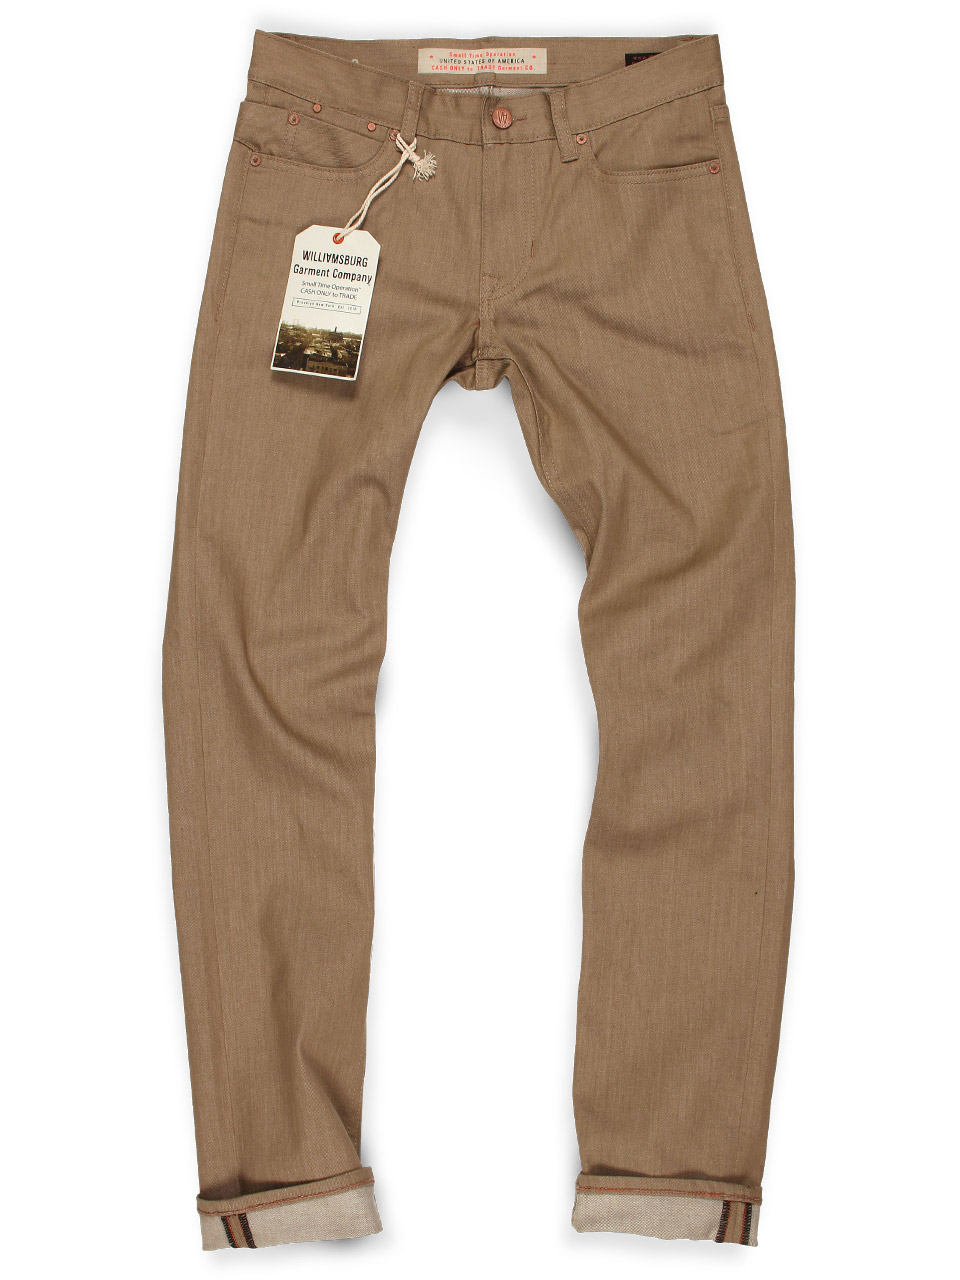 Slim Fit Tan Jeans For Men With Stretch | Williamsburg Jeans